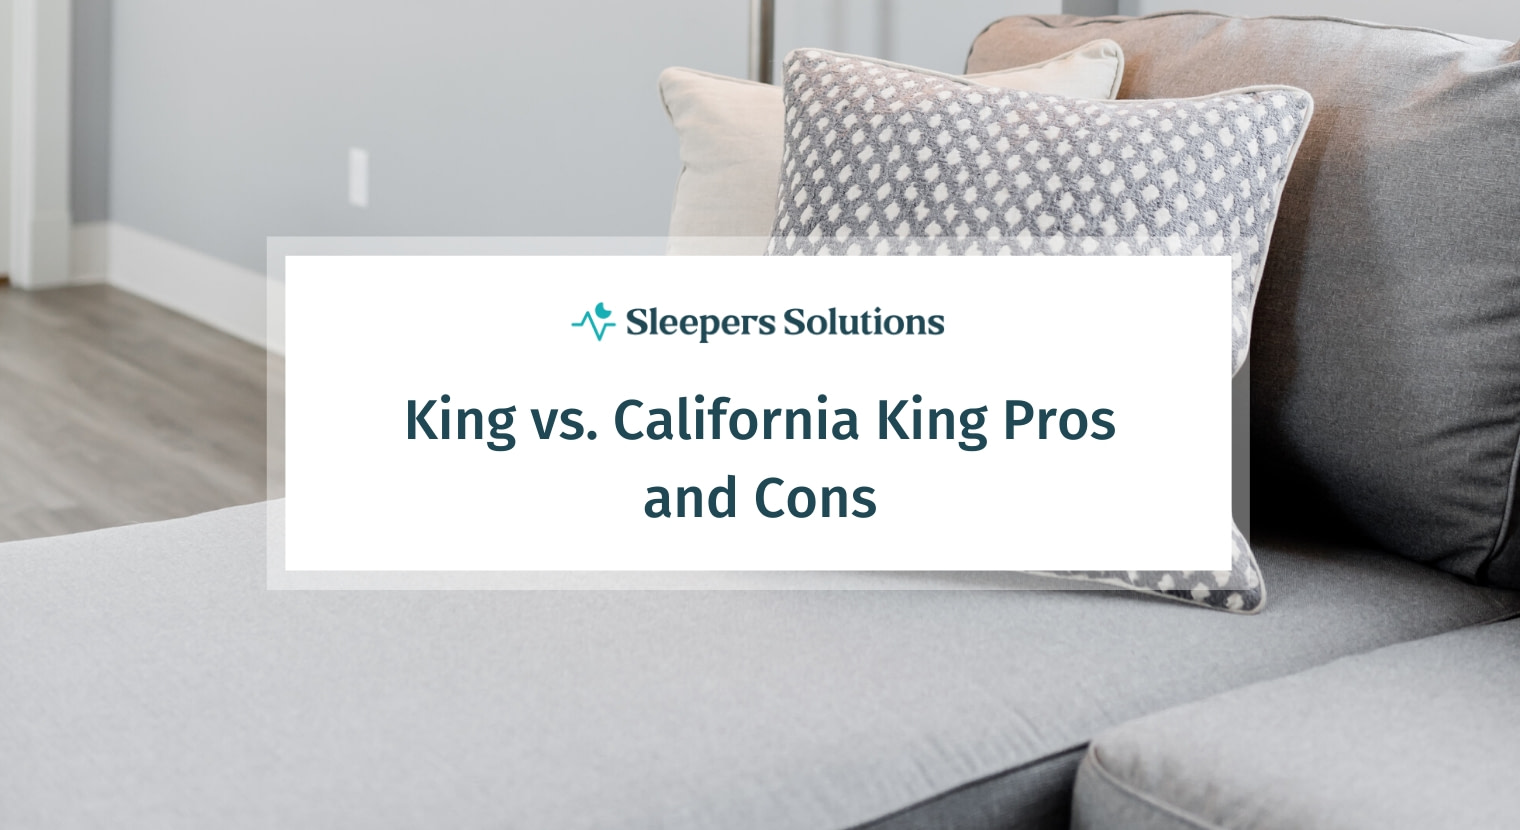 King vs. California King Pros and Cons